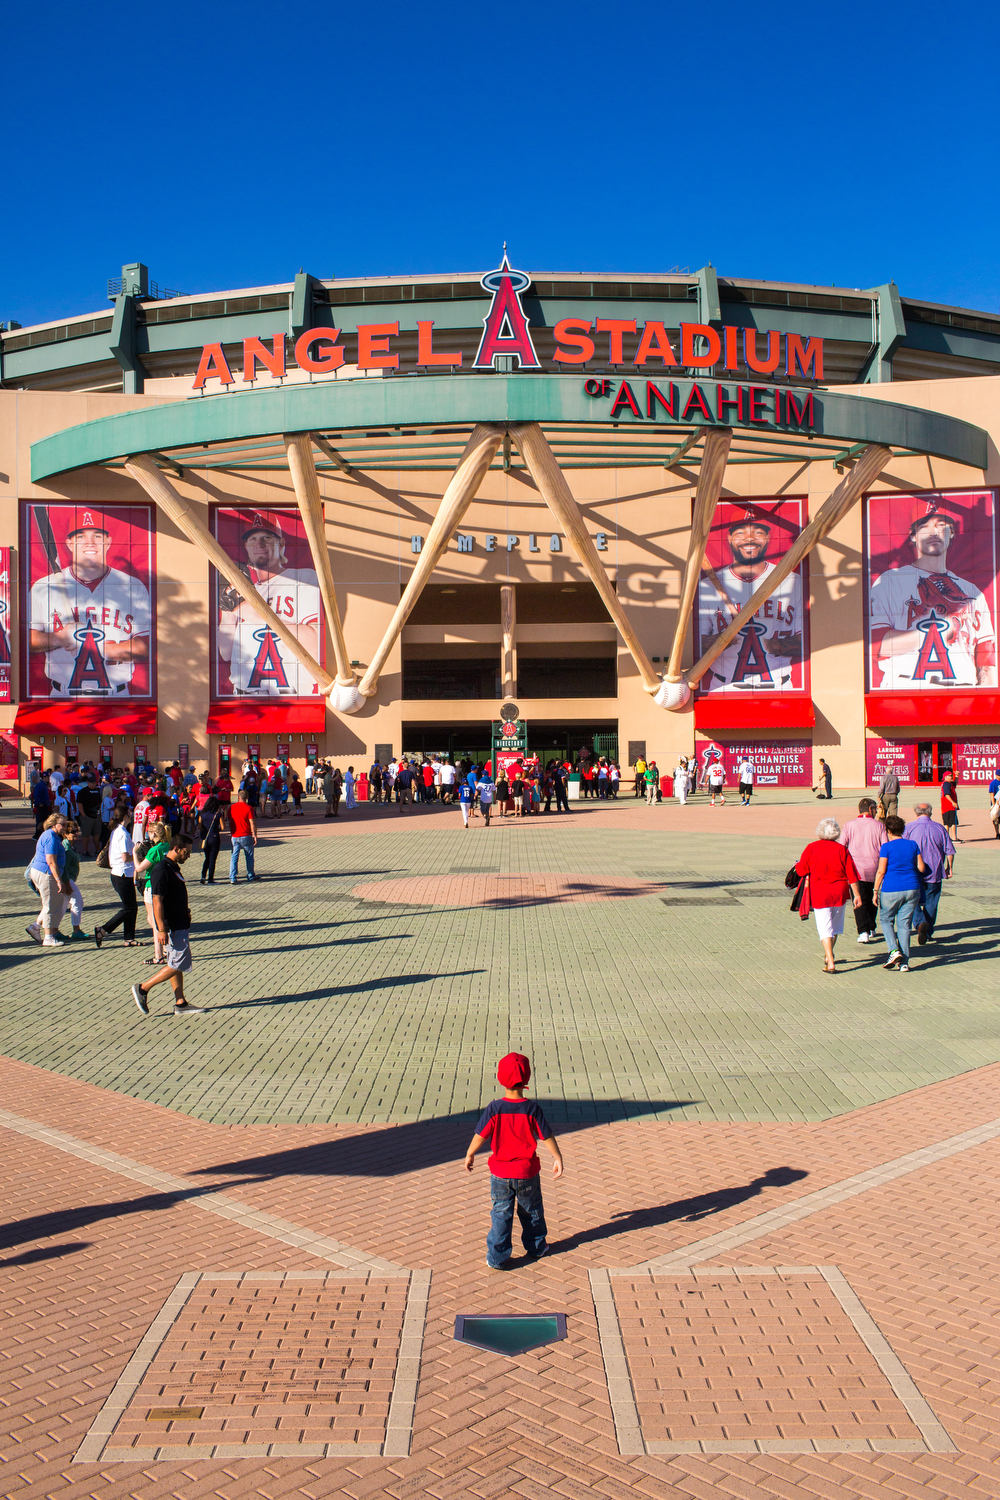 A young fan stands outside of Angel Stadium of Anaheim in Anaheim, CA.